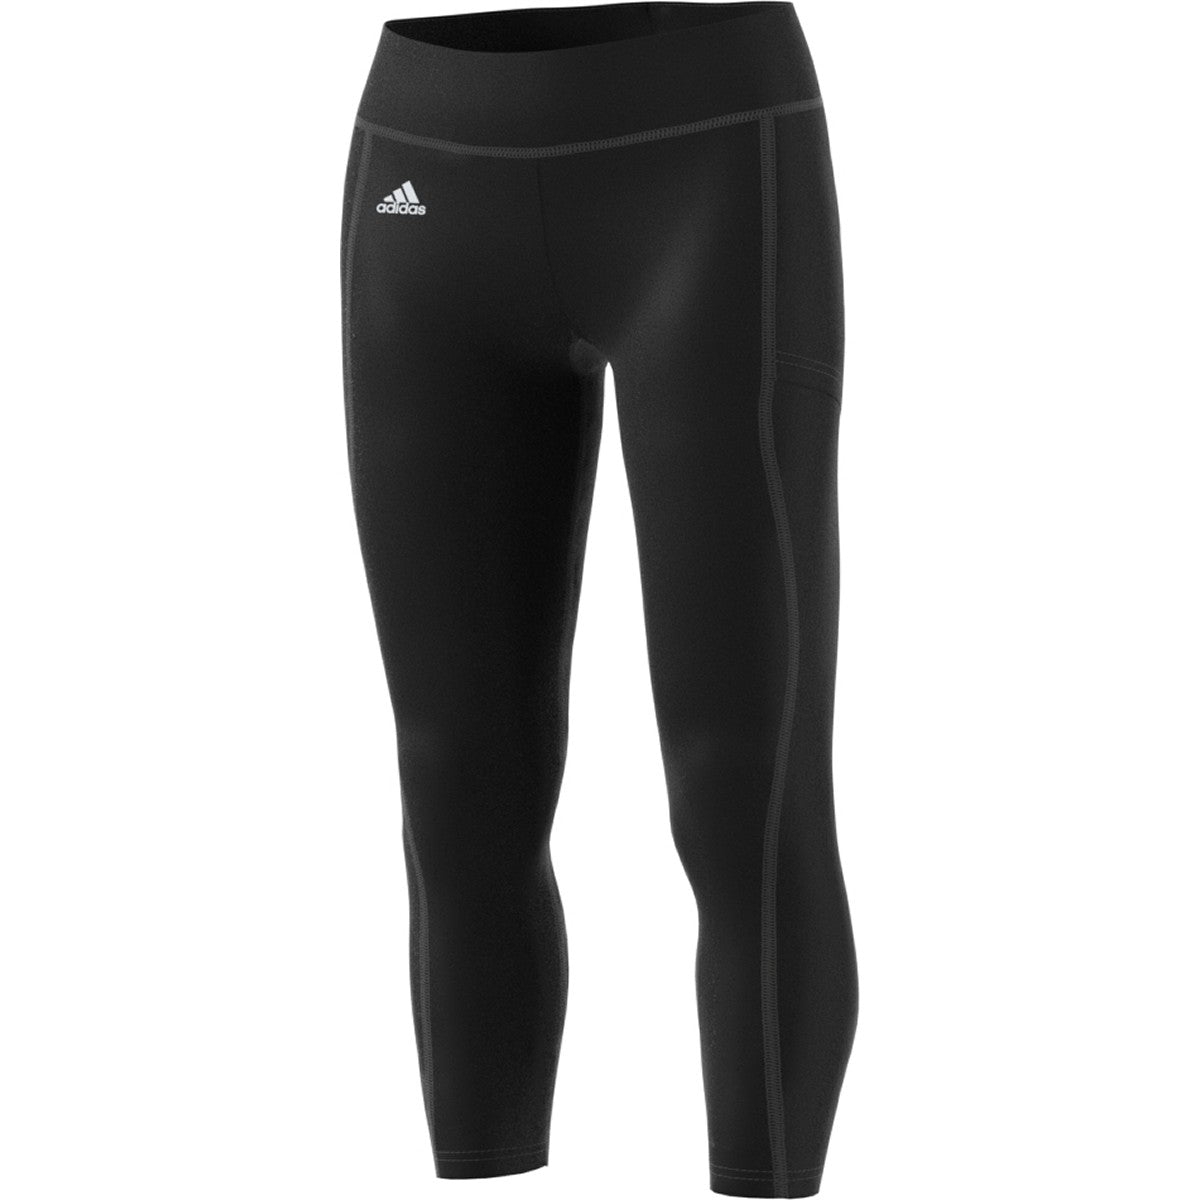 Adidas Womens Club Tight   Black